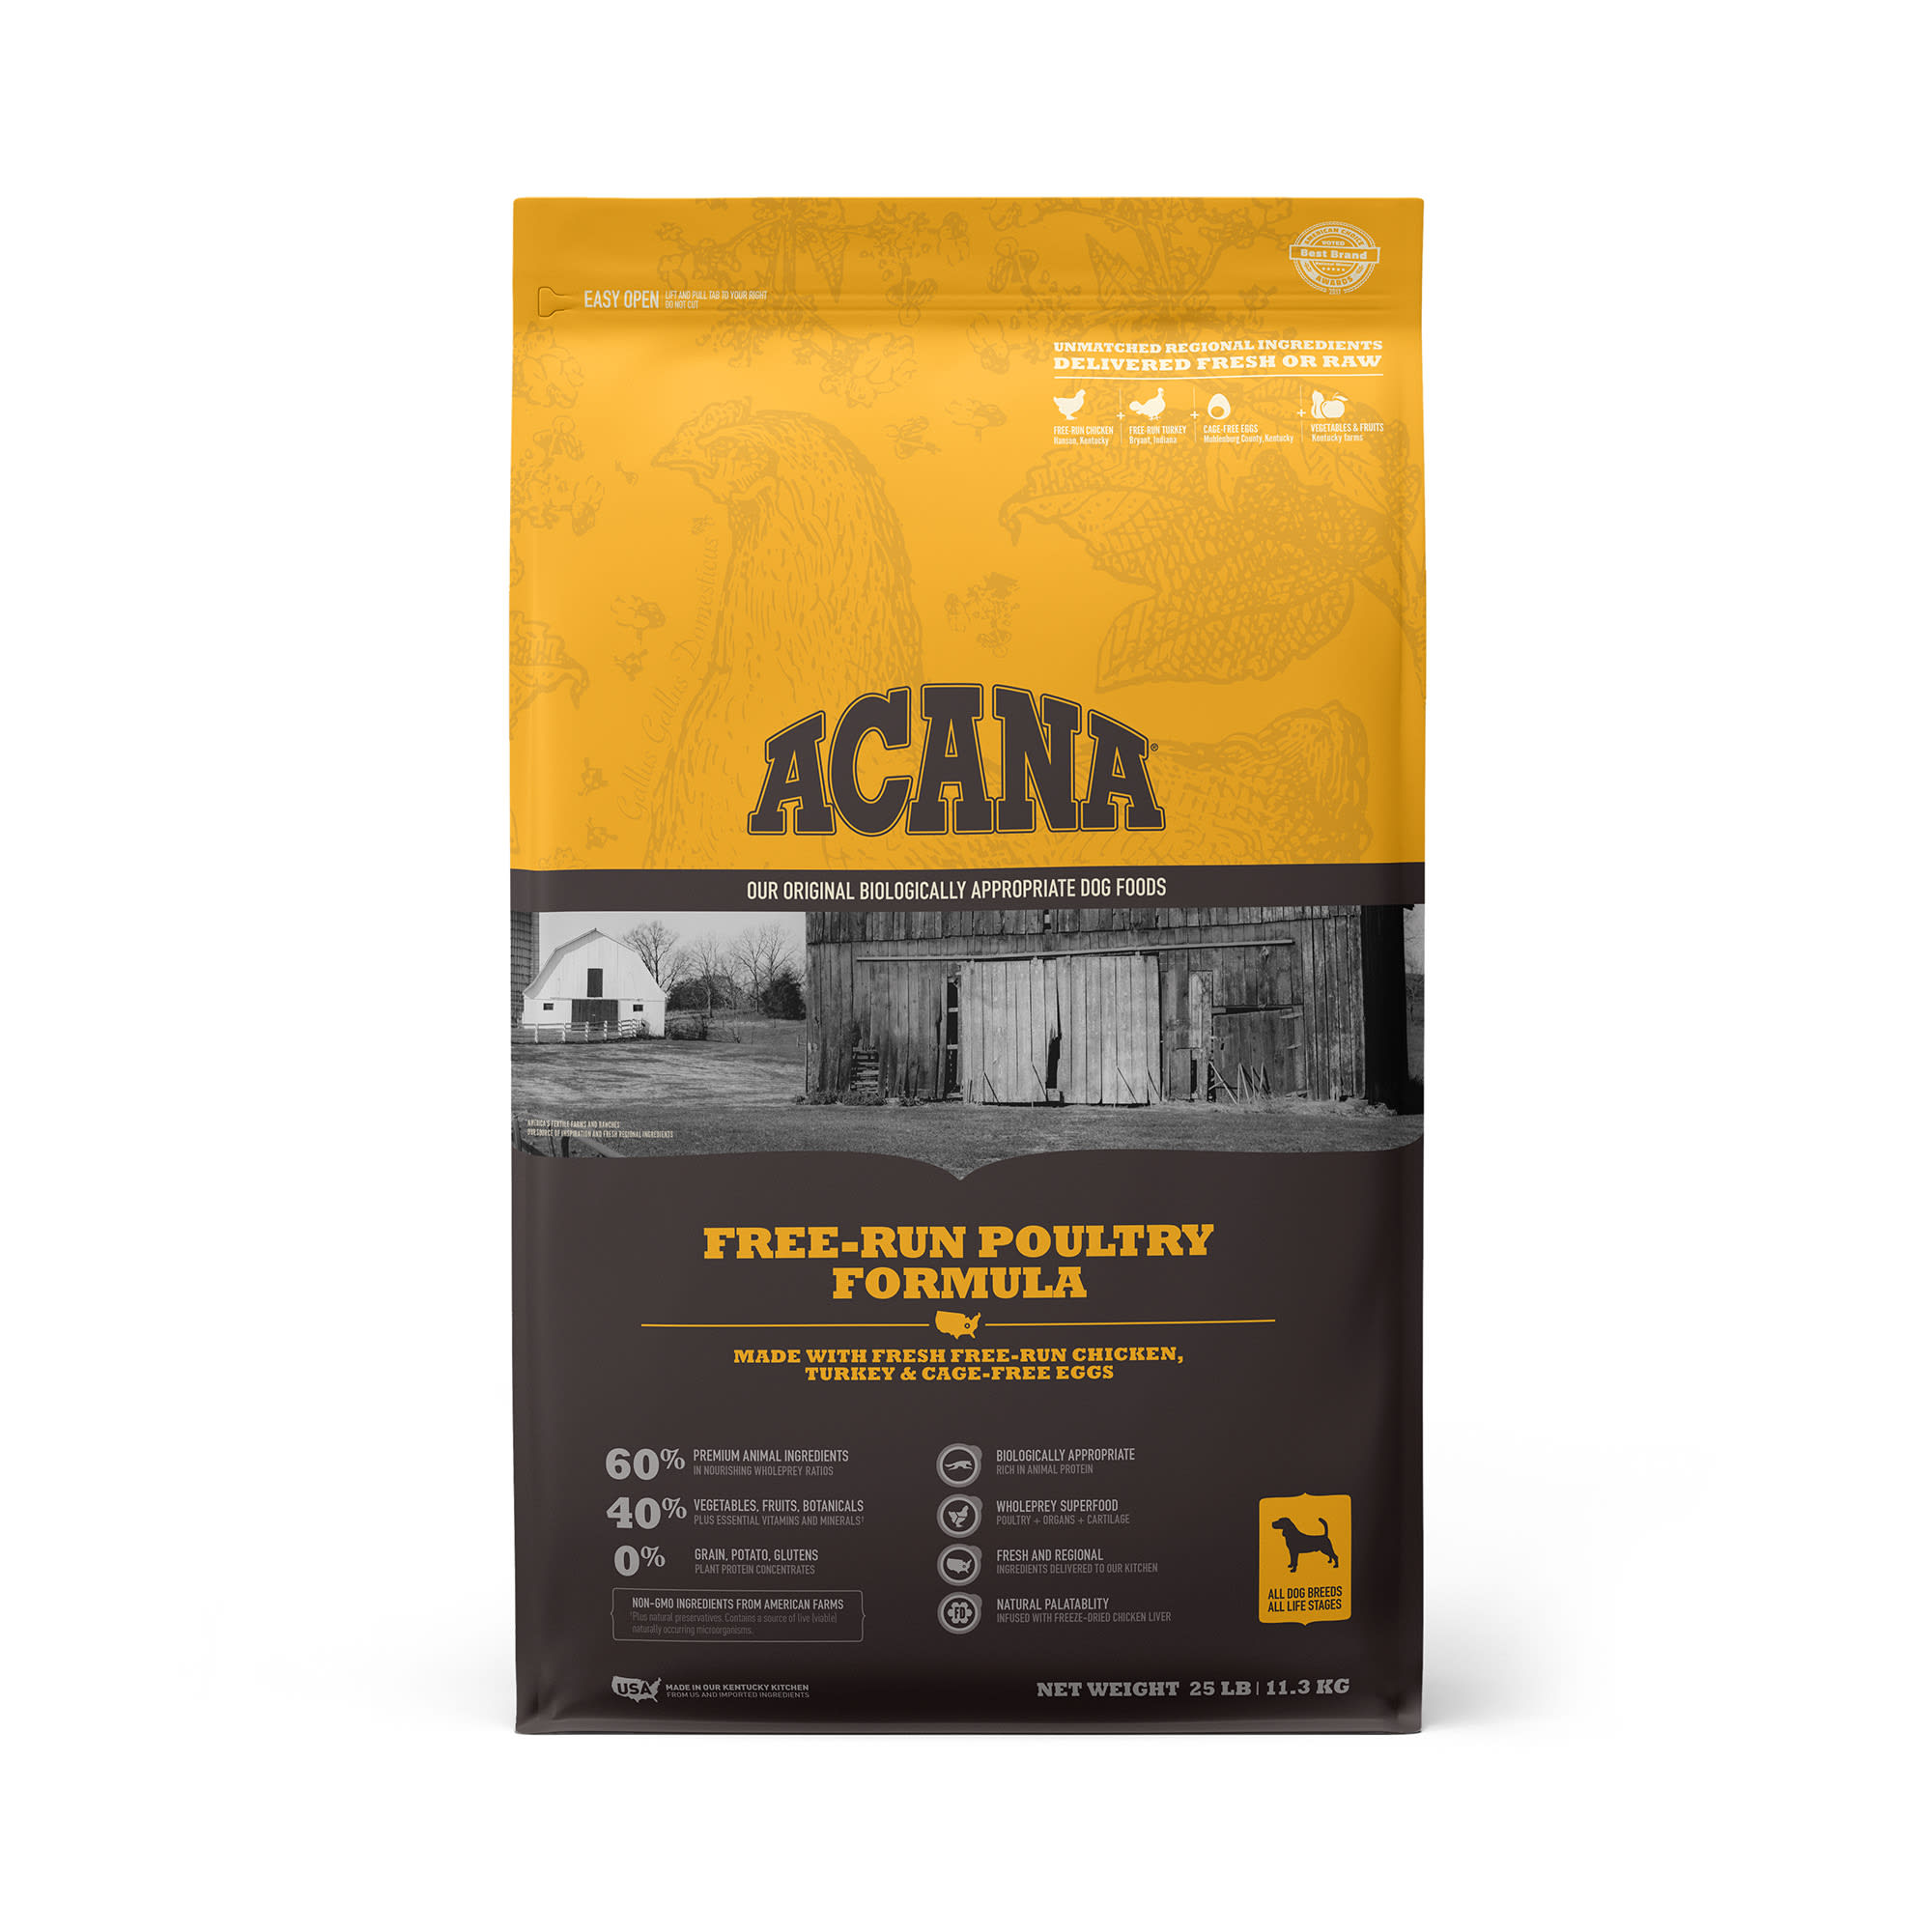 ACANA Grain-Free Free Run Poultry Chicken and Turkey and Cage-free Eggs Dry Dog Food